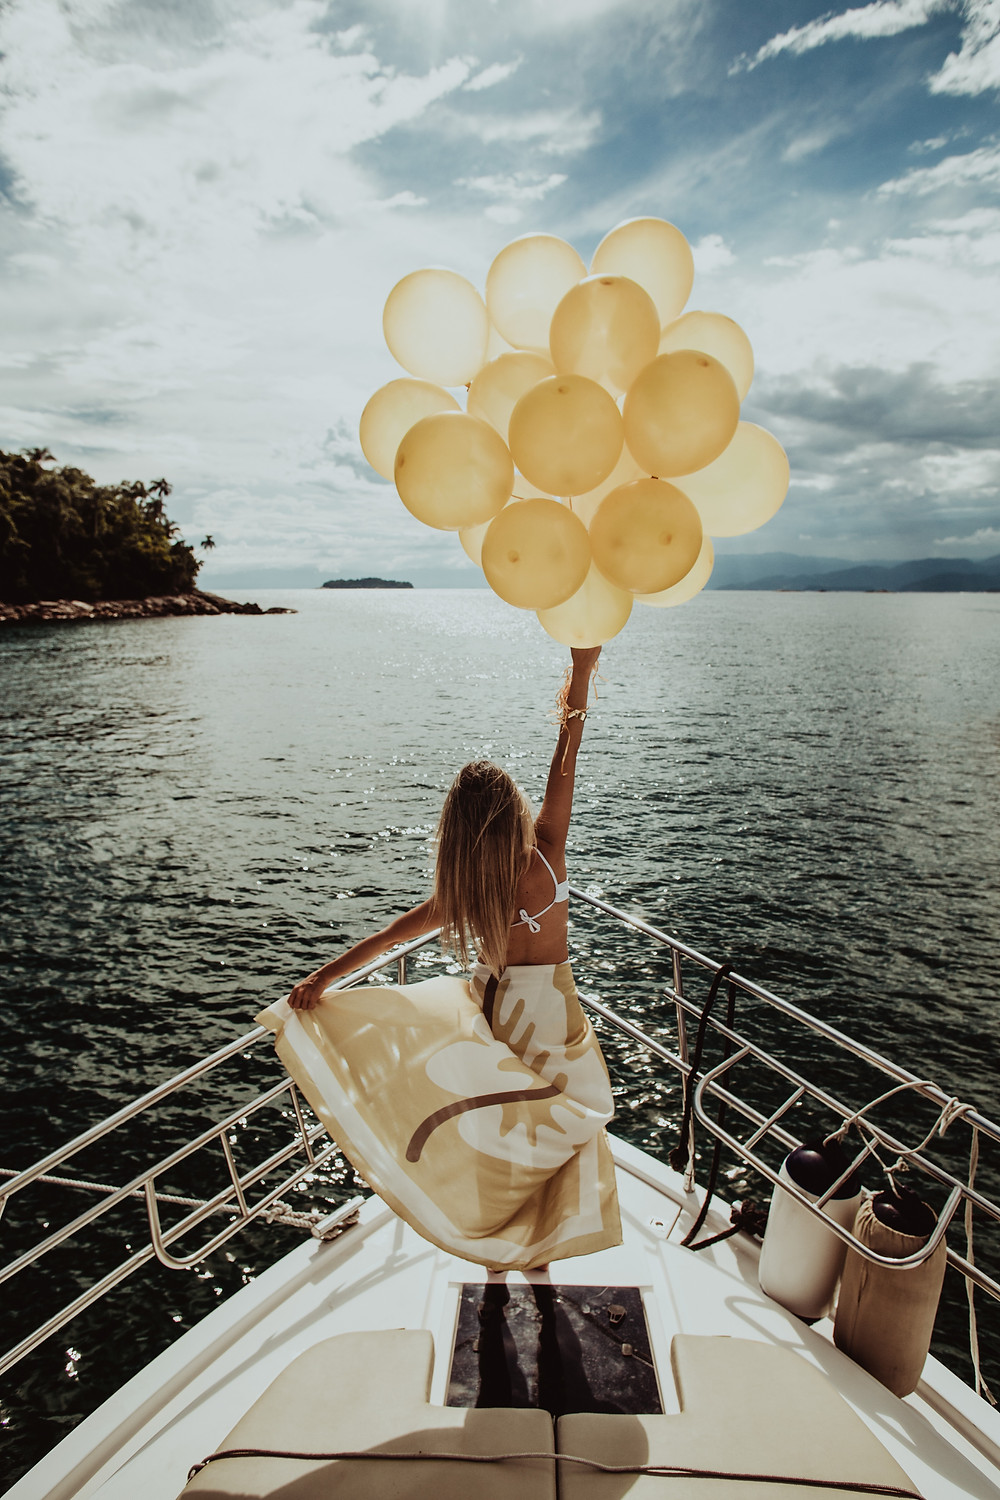 Beautiful woman holding up a bunch of balloons on a yacht.